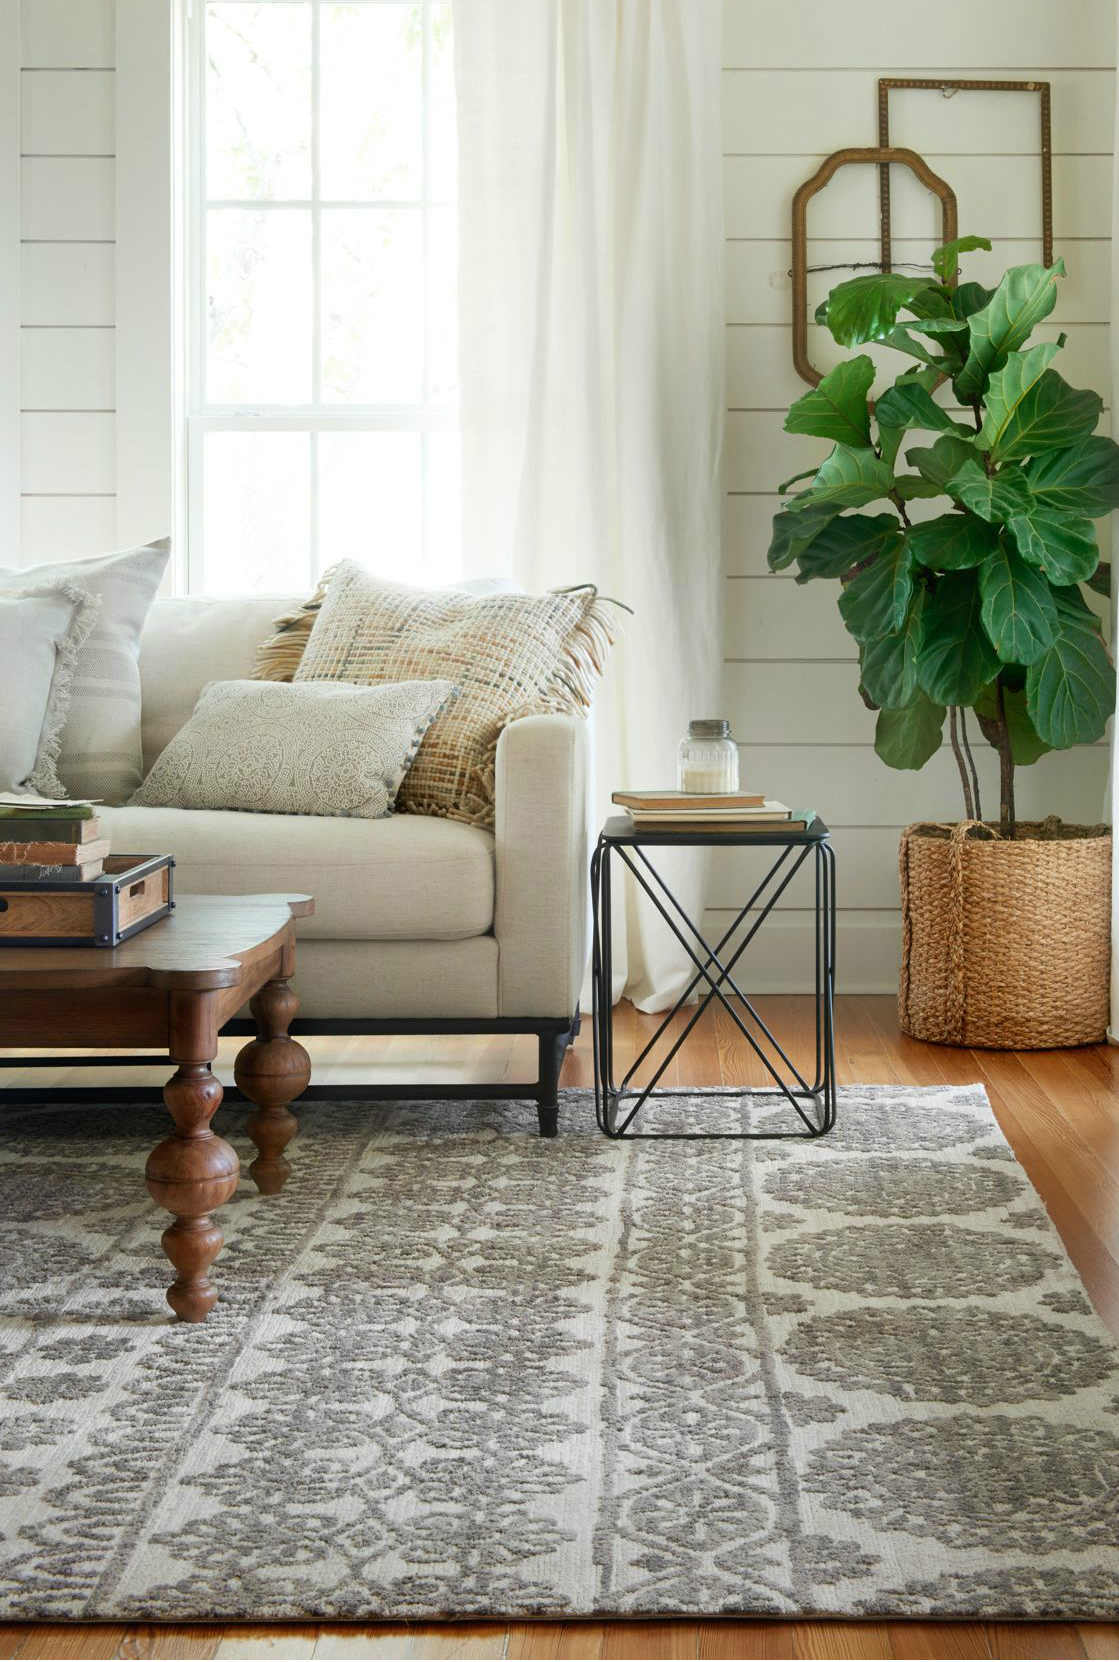 Joanna Gaines' New Collection Of Rugs For A Magnolia Home Decor